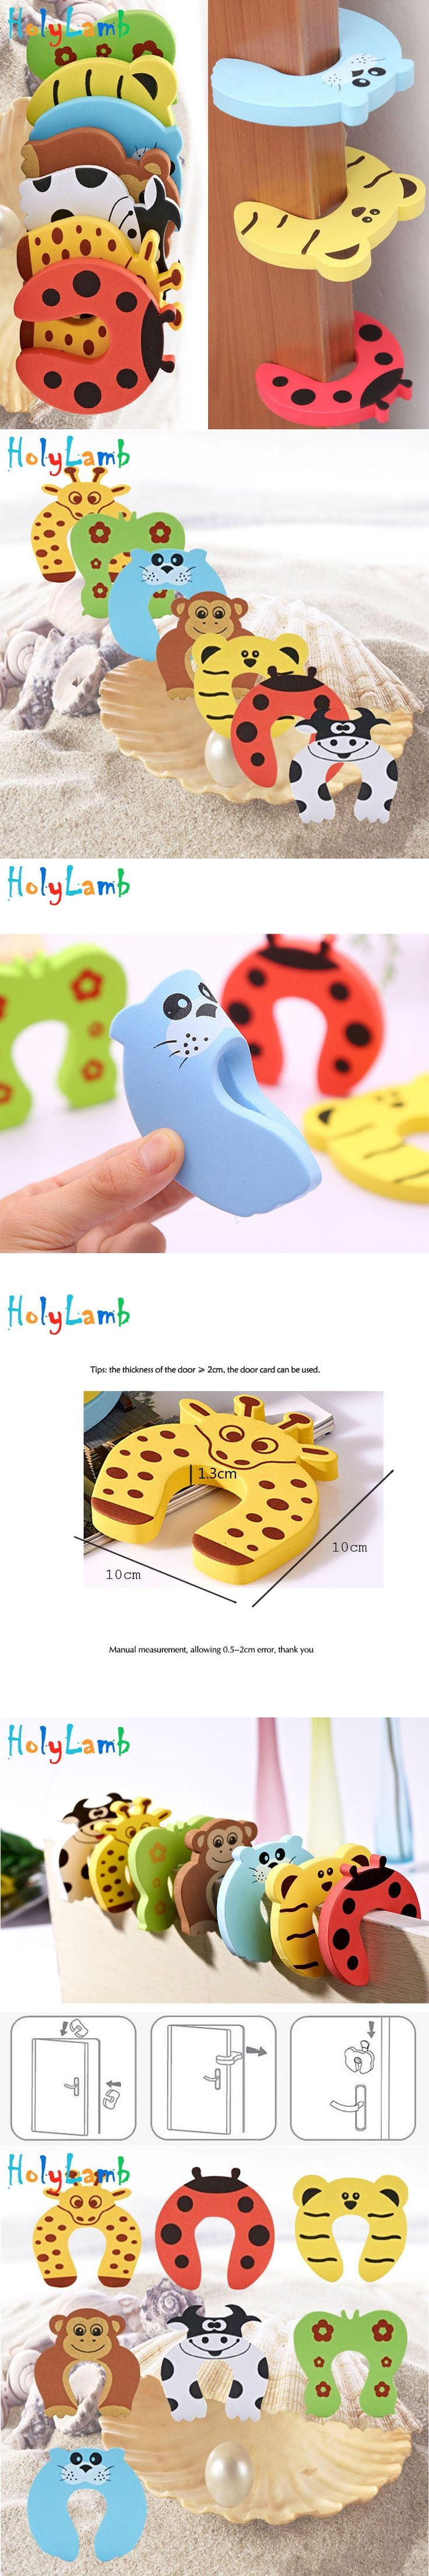 7Pcs Lot Animal Baby Security Door Card Protection Tools Baby Safety Gate Products Newborn Care